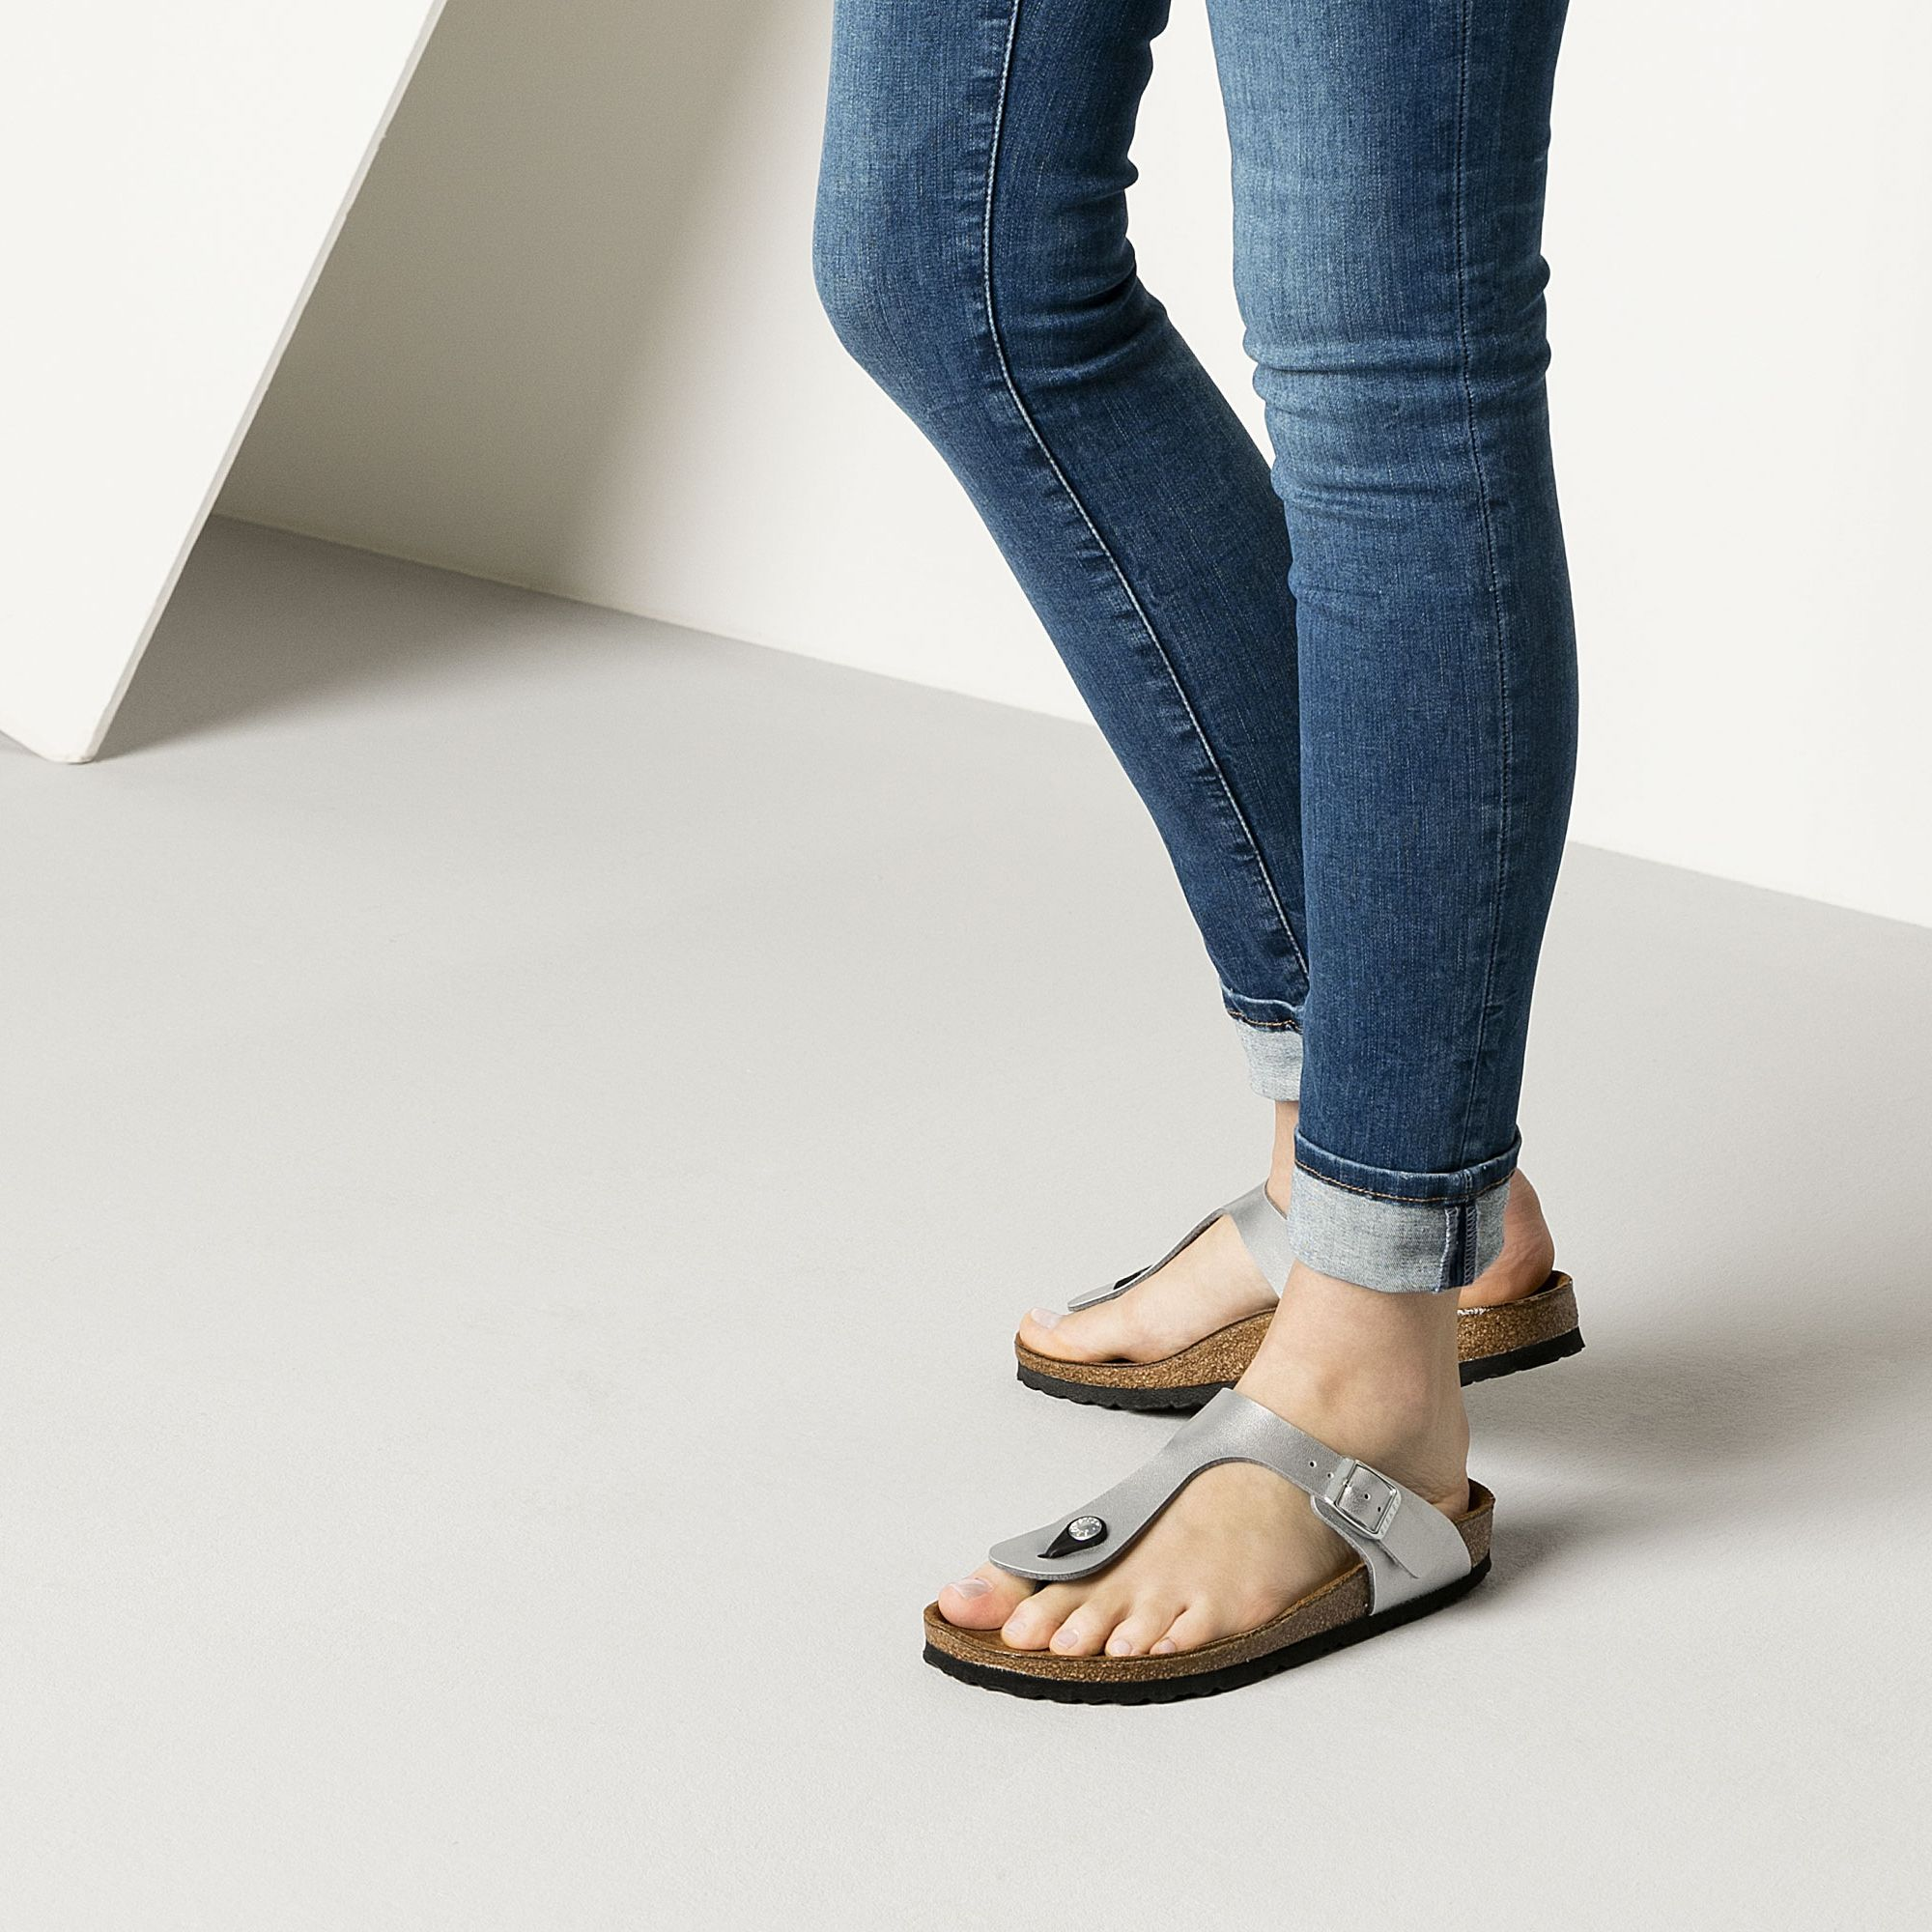 BIRKENSTOCK Gizeh BirkoFlor Silver in all sizes ? Buy directly from the  manufacturer online ? All fashion trends from Birkenstock